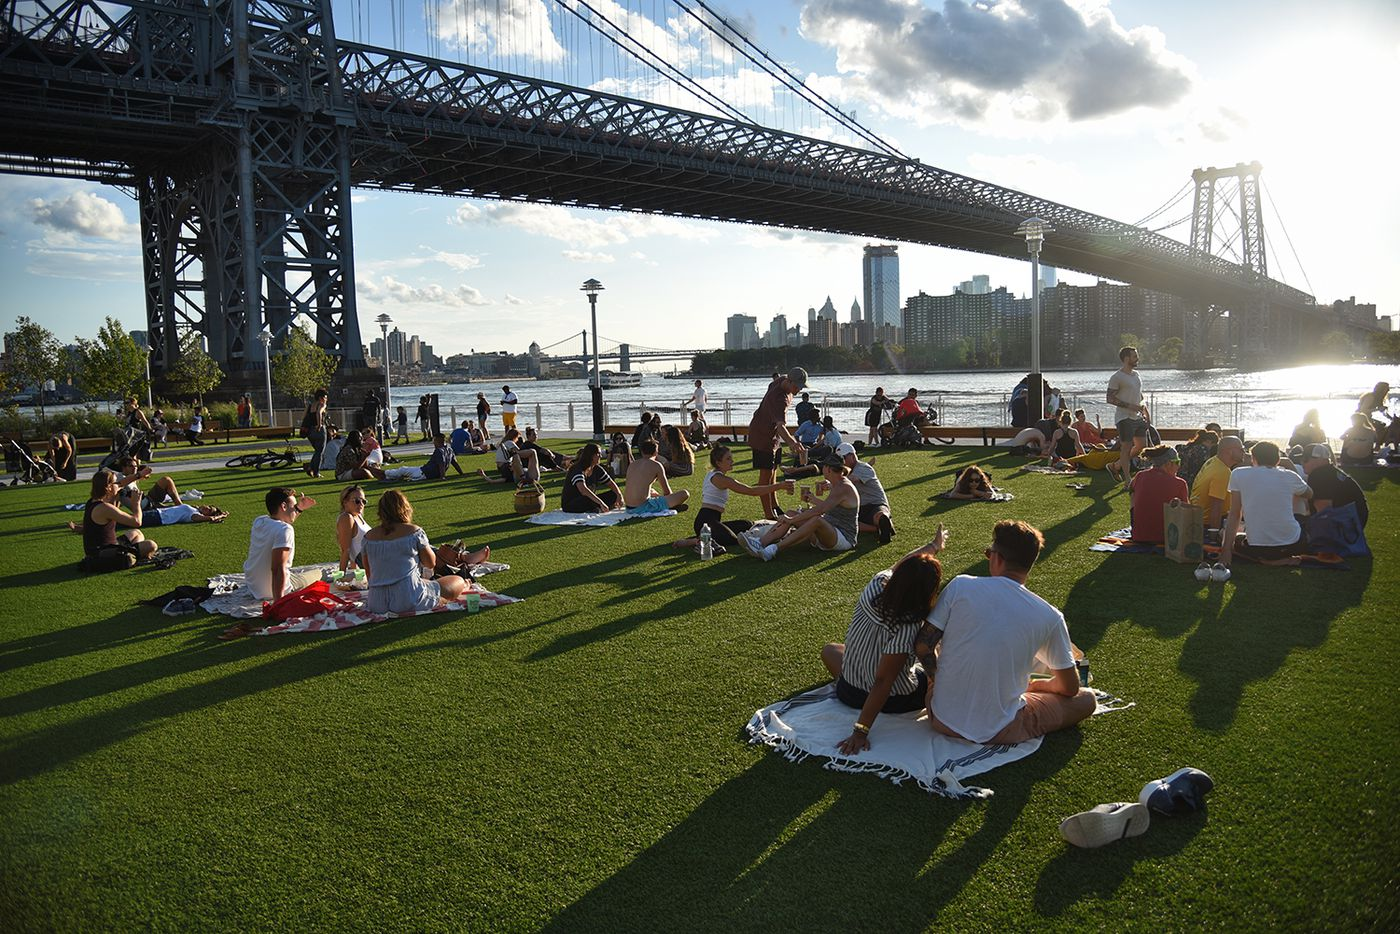 NYC's new waterfront parks represent the erasure of its